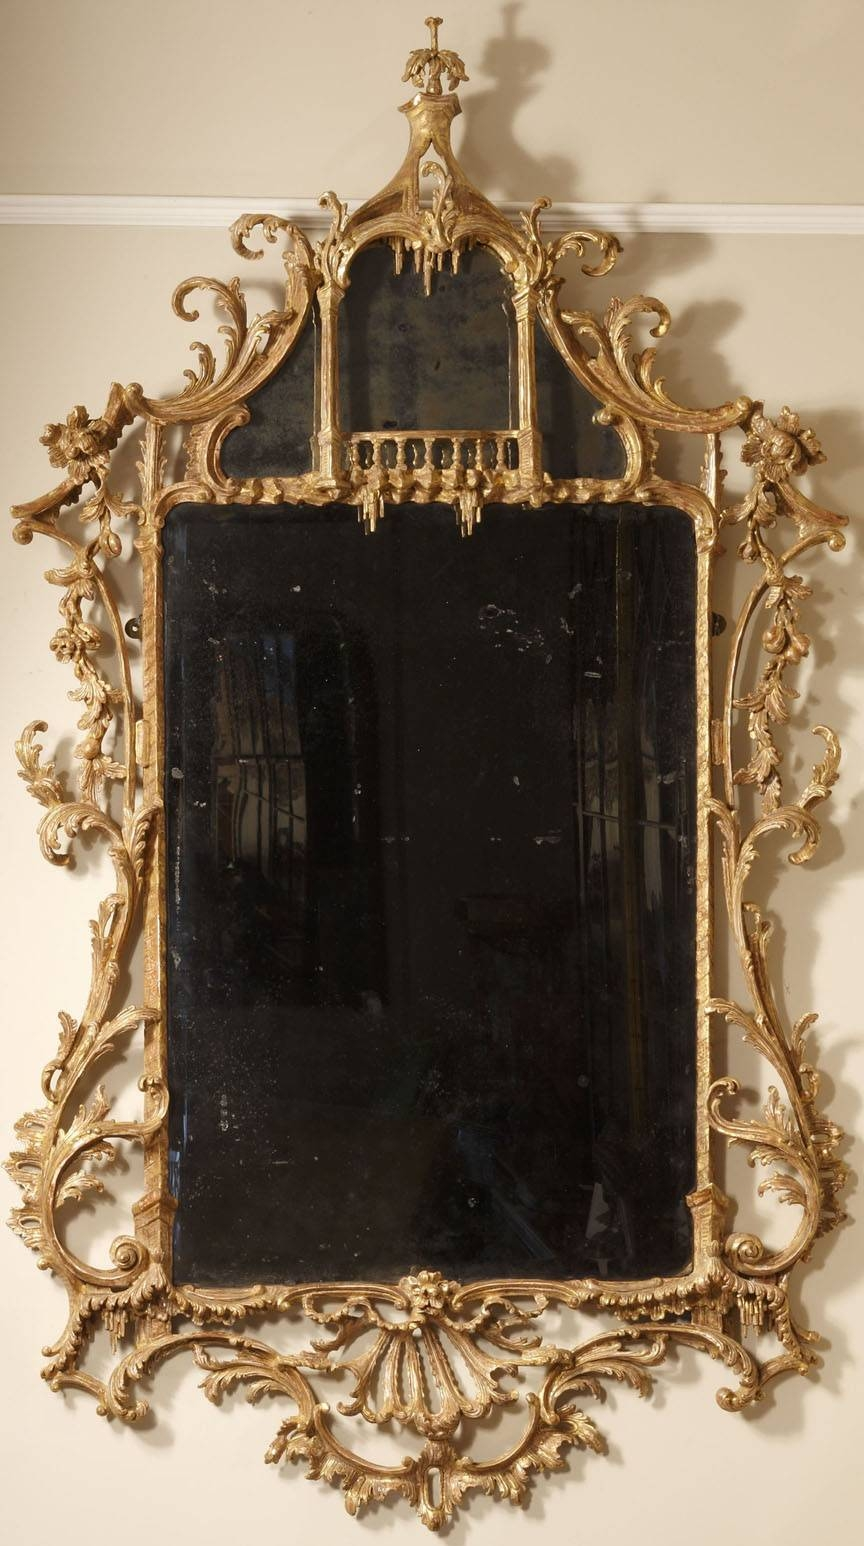 A Transitional Baroque And Rococo Mirror | Clinton Howell intended for Rococo Mirrors (Image 8 of 25)